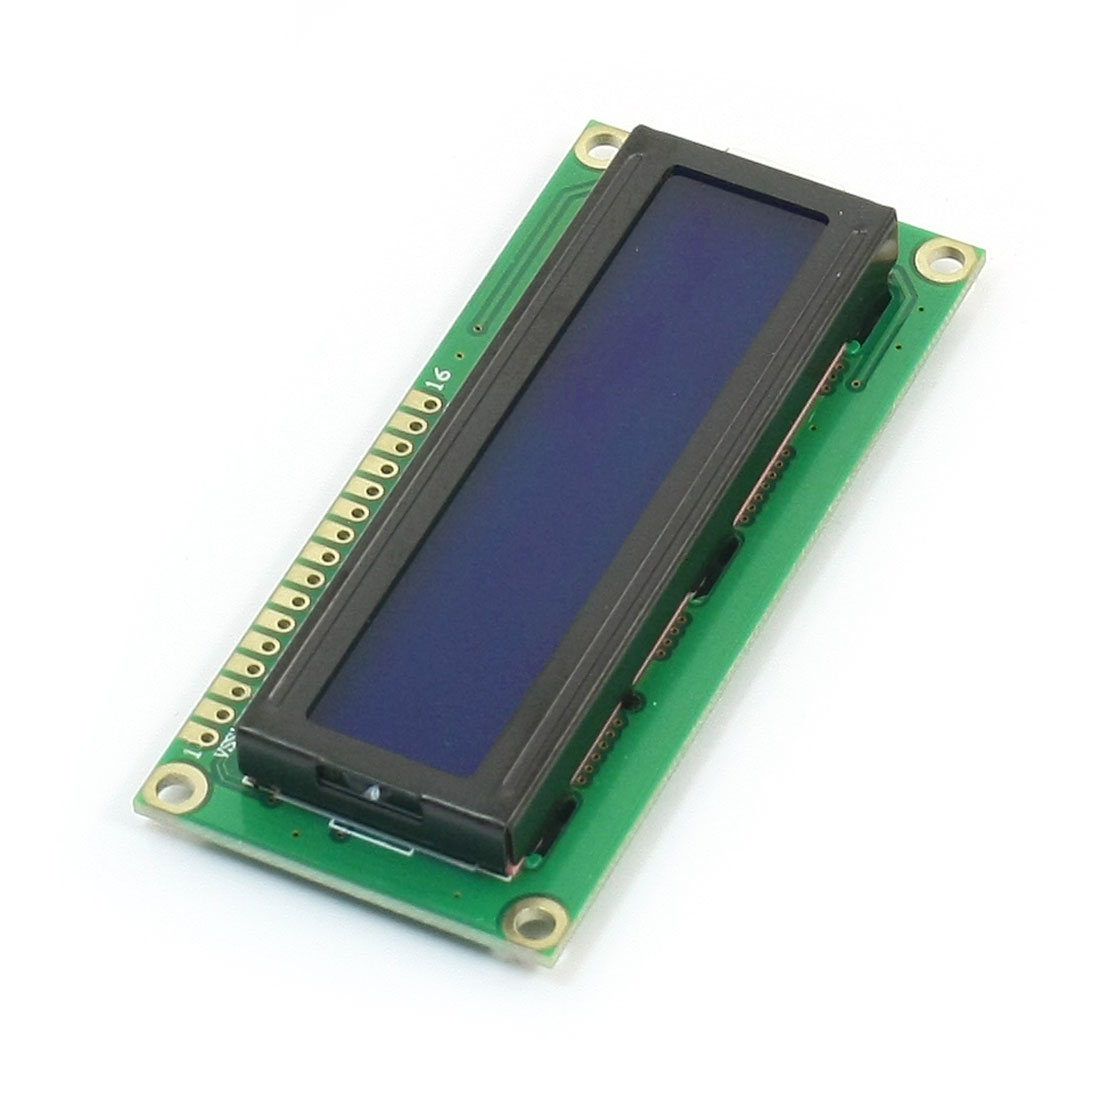 "Blue Screen 1602 16x2 Character Digital 2.6"" LCD Module for Microcontroller"